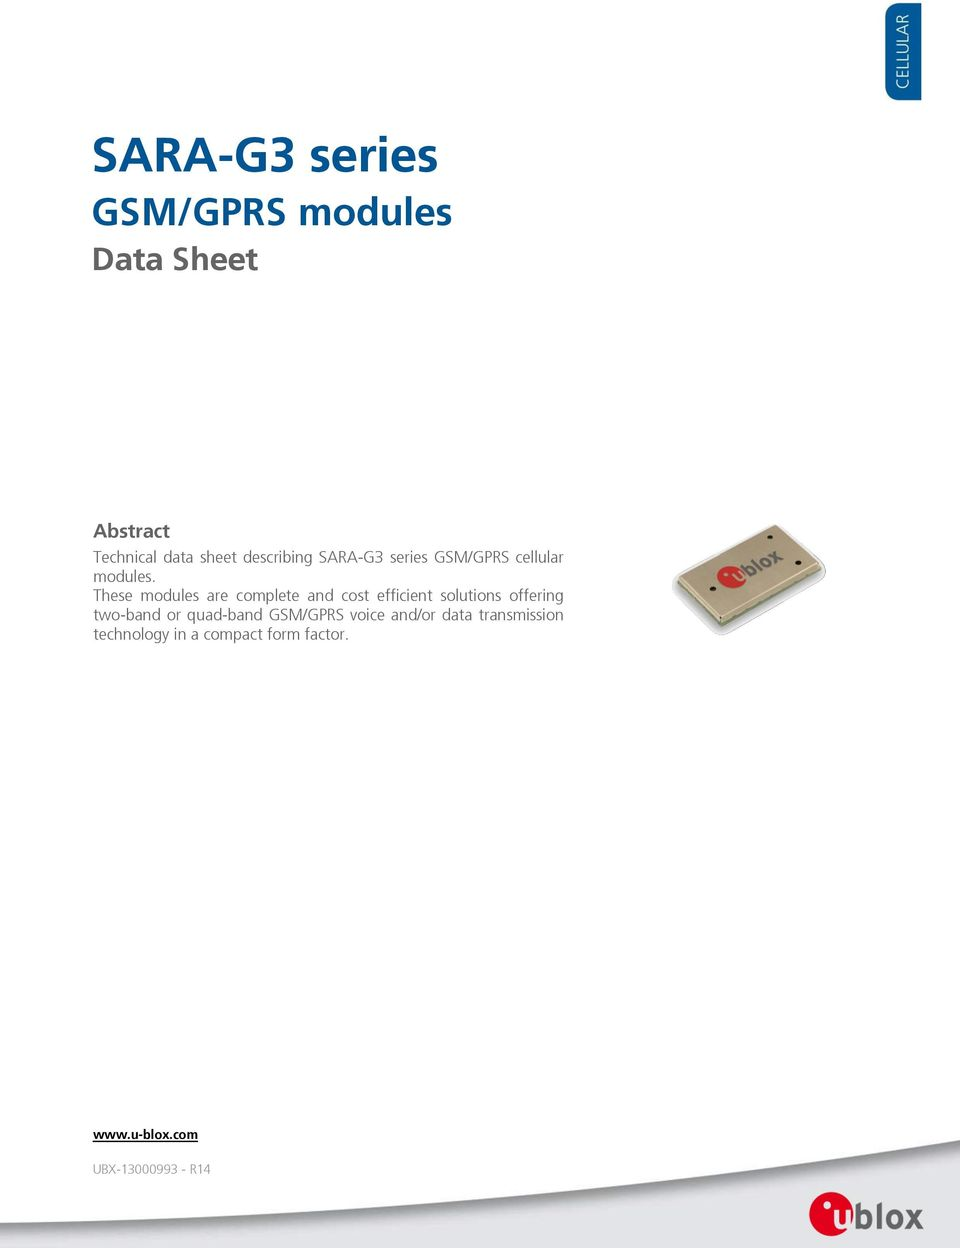 These modules are complete and cost efficient solutions offering two-band or